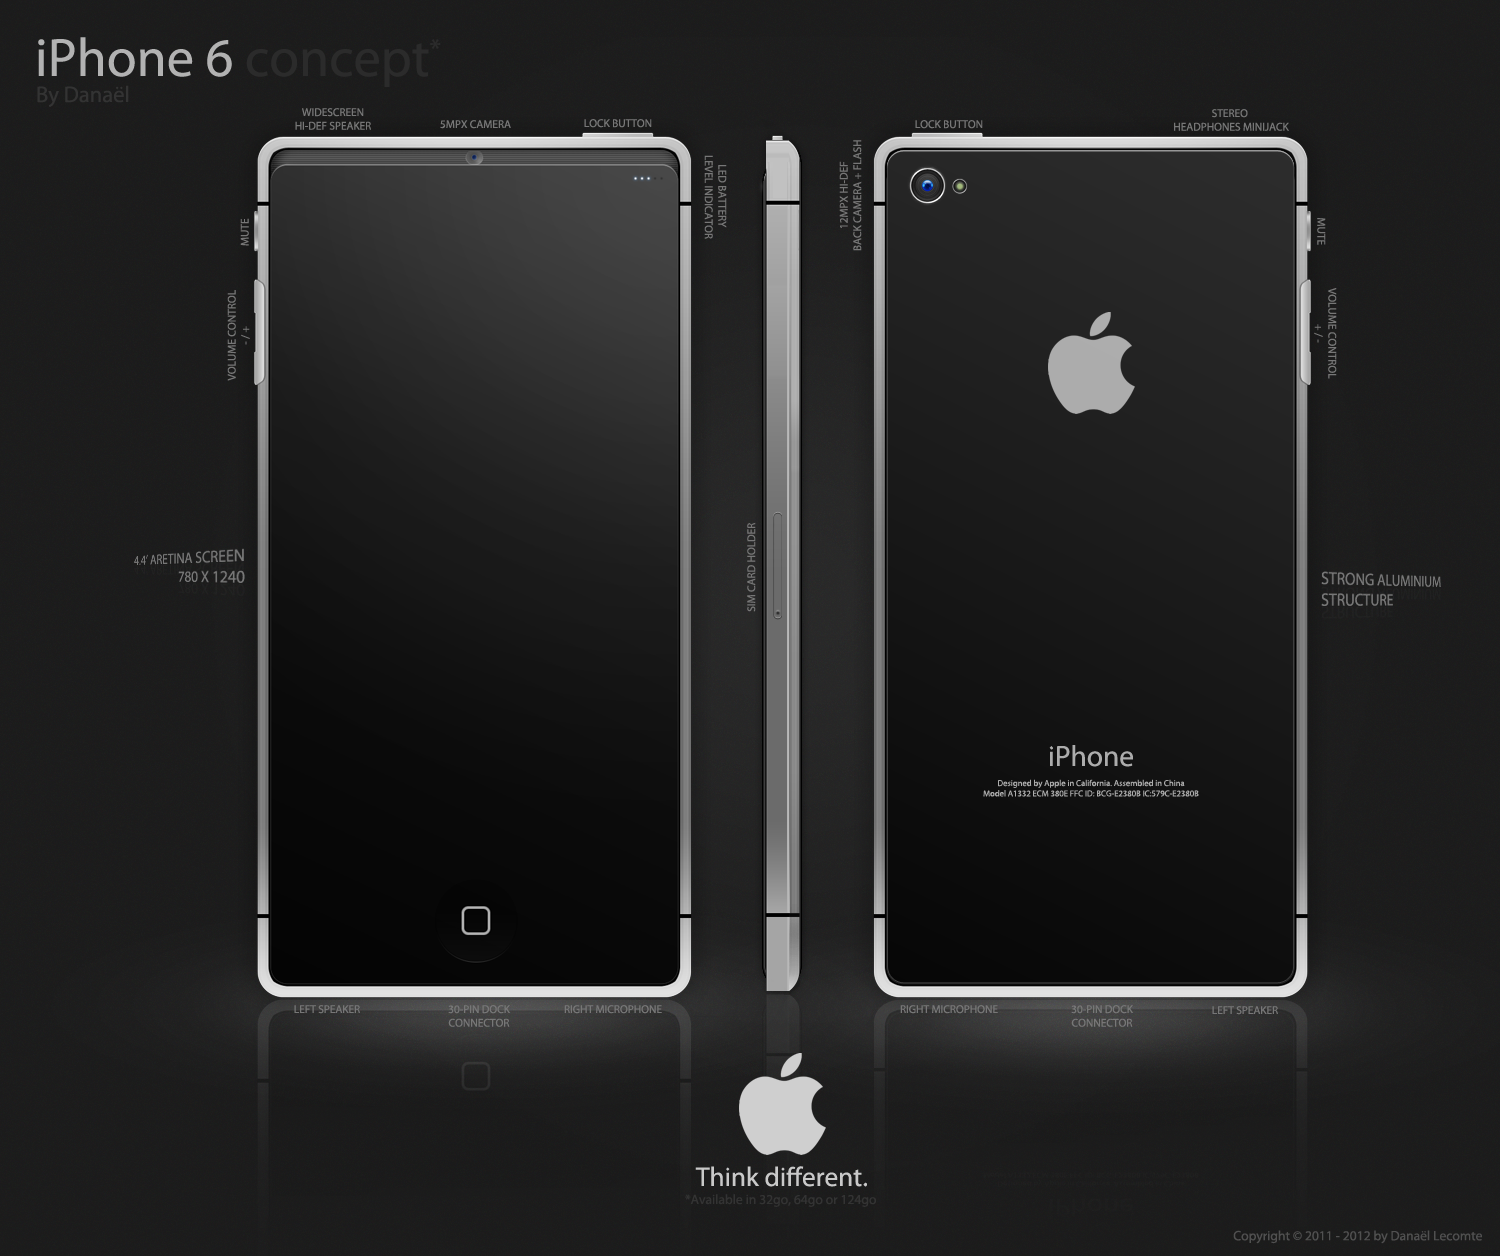 iPhone 6 Trump concept